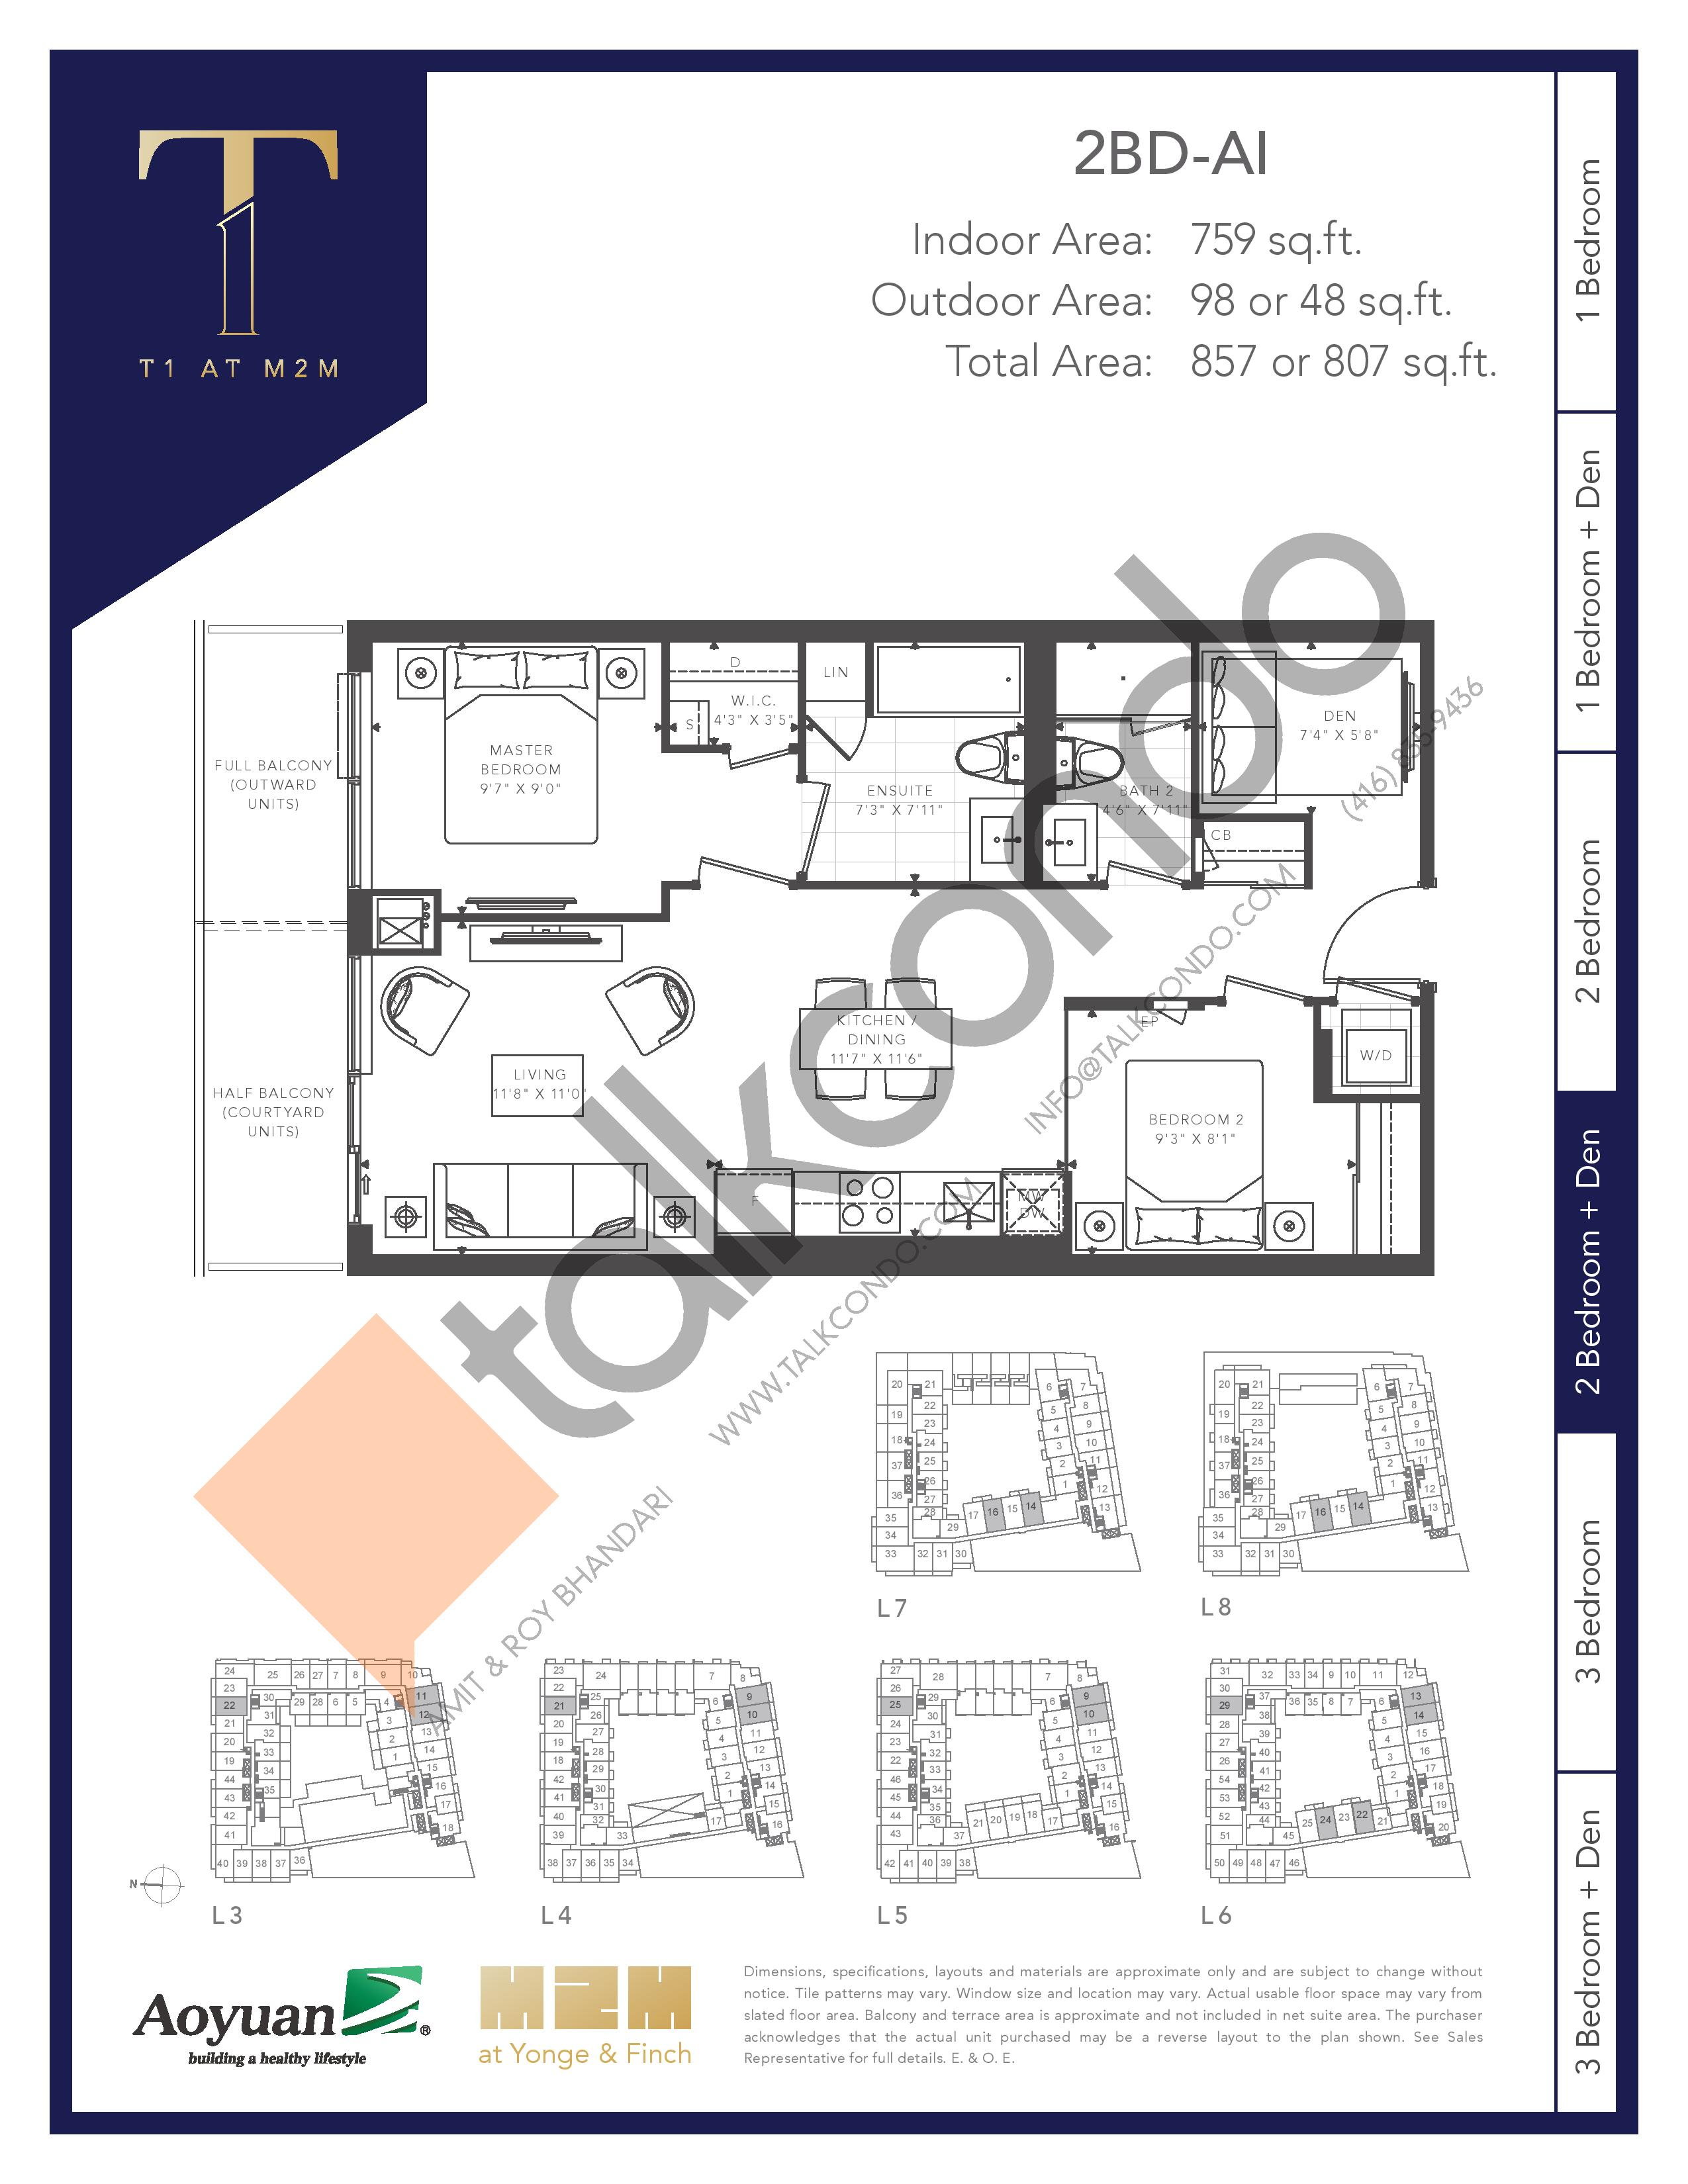 2BD-AI (Tower) Floor Plan at T1 at M2M Condos - 759 sq.ft